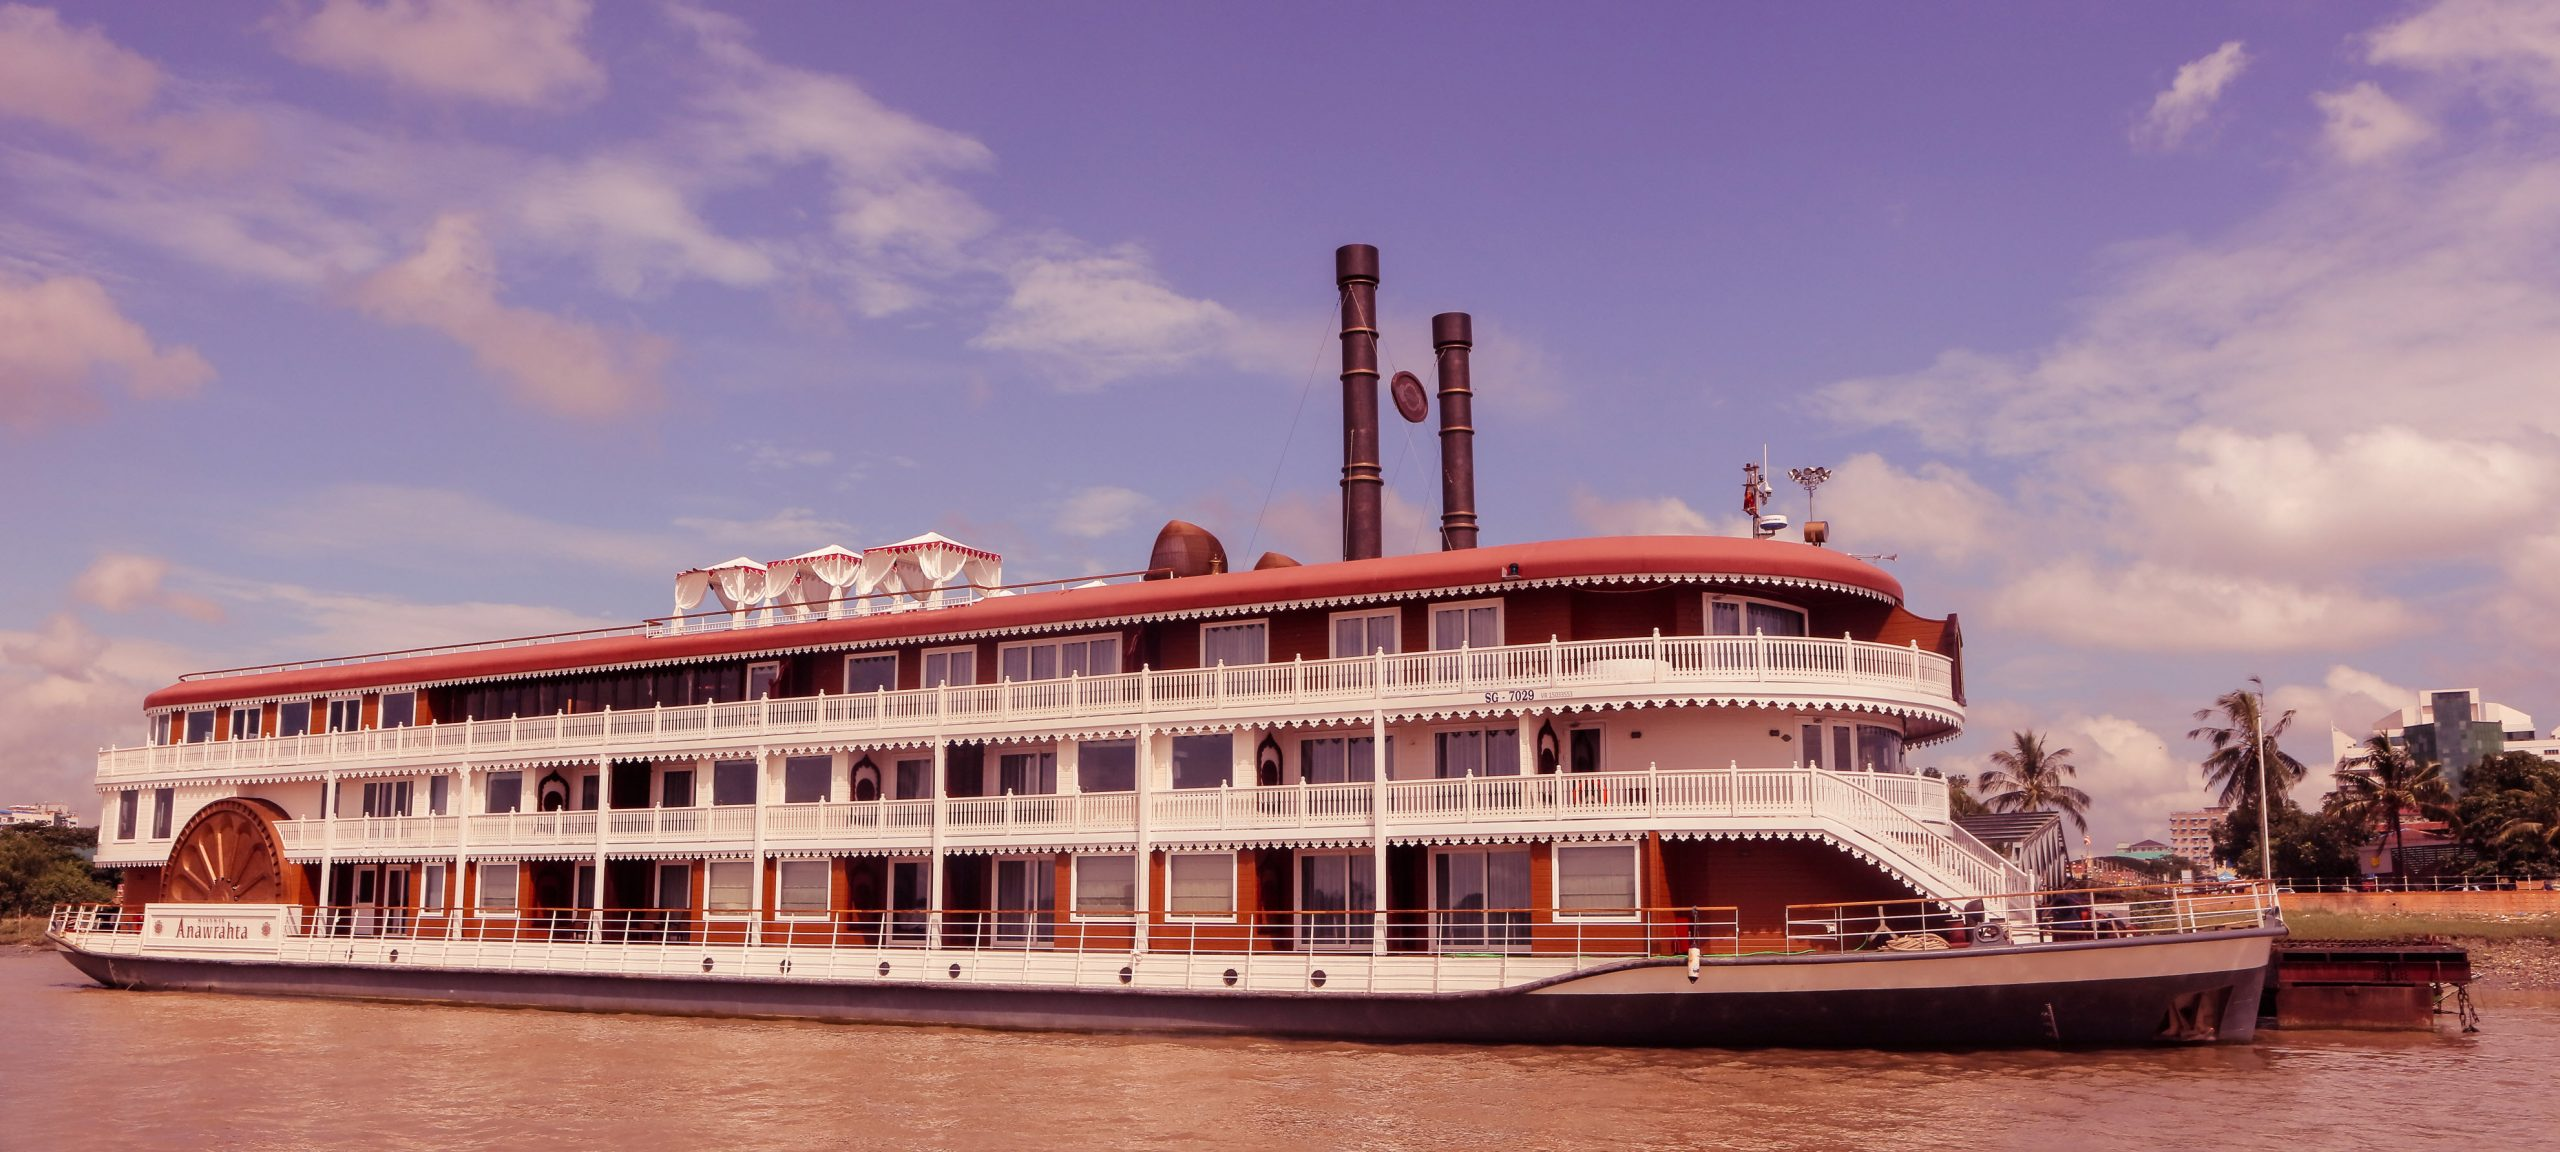 Heritage Line's most luxurious flagship, Heritage Line Anawrahta cruising down the river at sunset